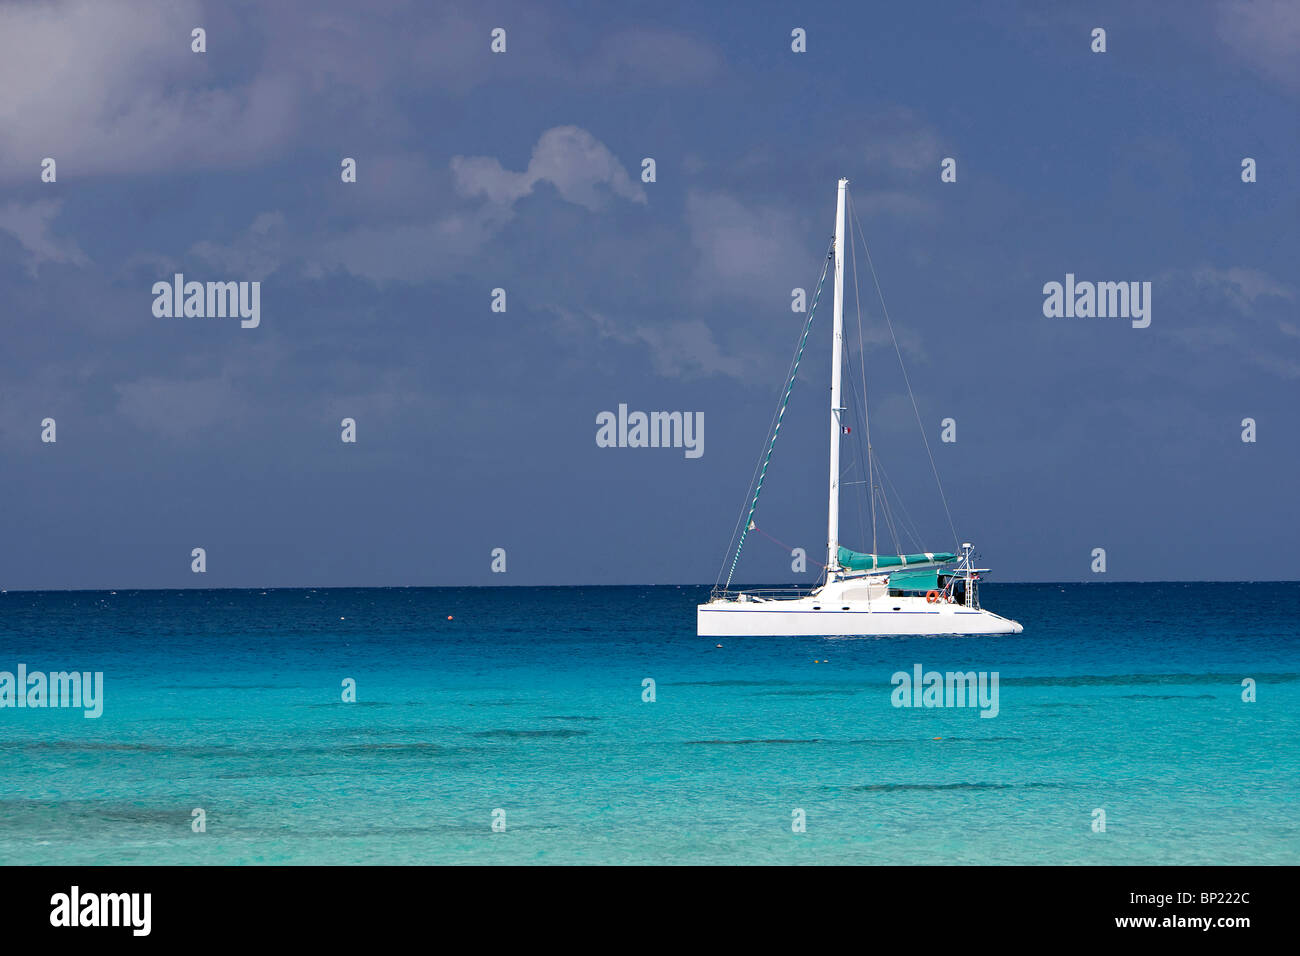 Catamaran anchors in Lagoon, Rangiroa, French Polynesia - Stock Image